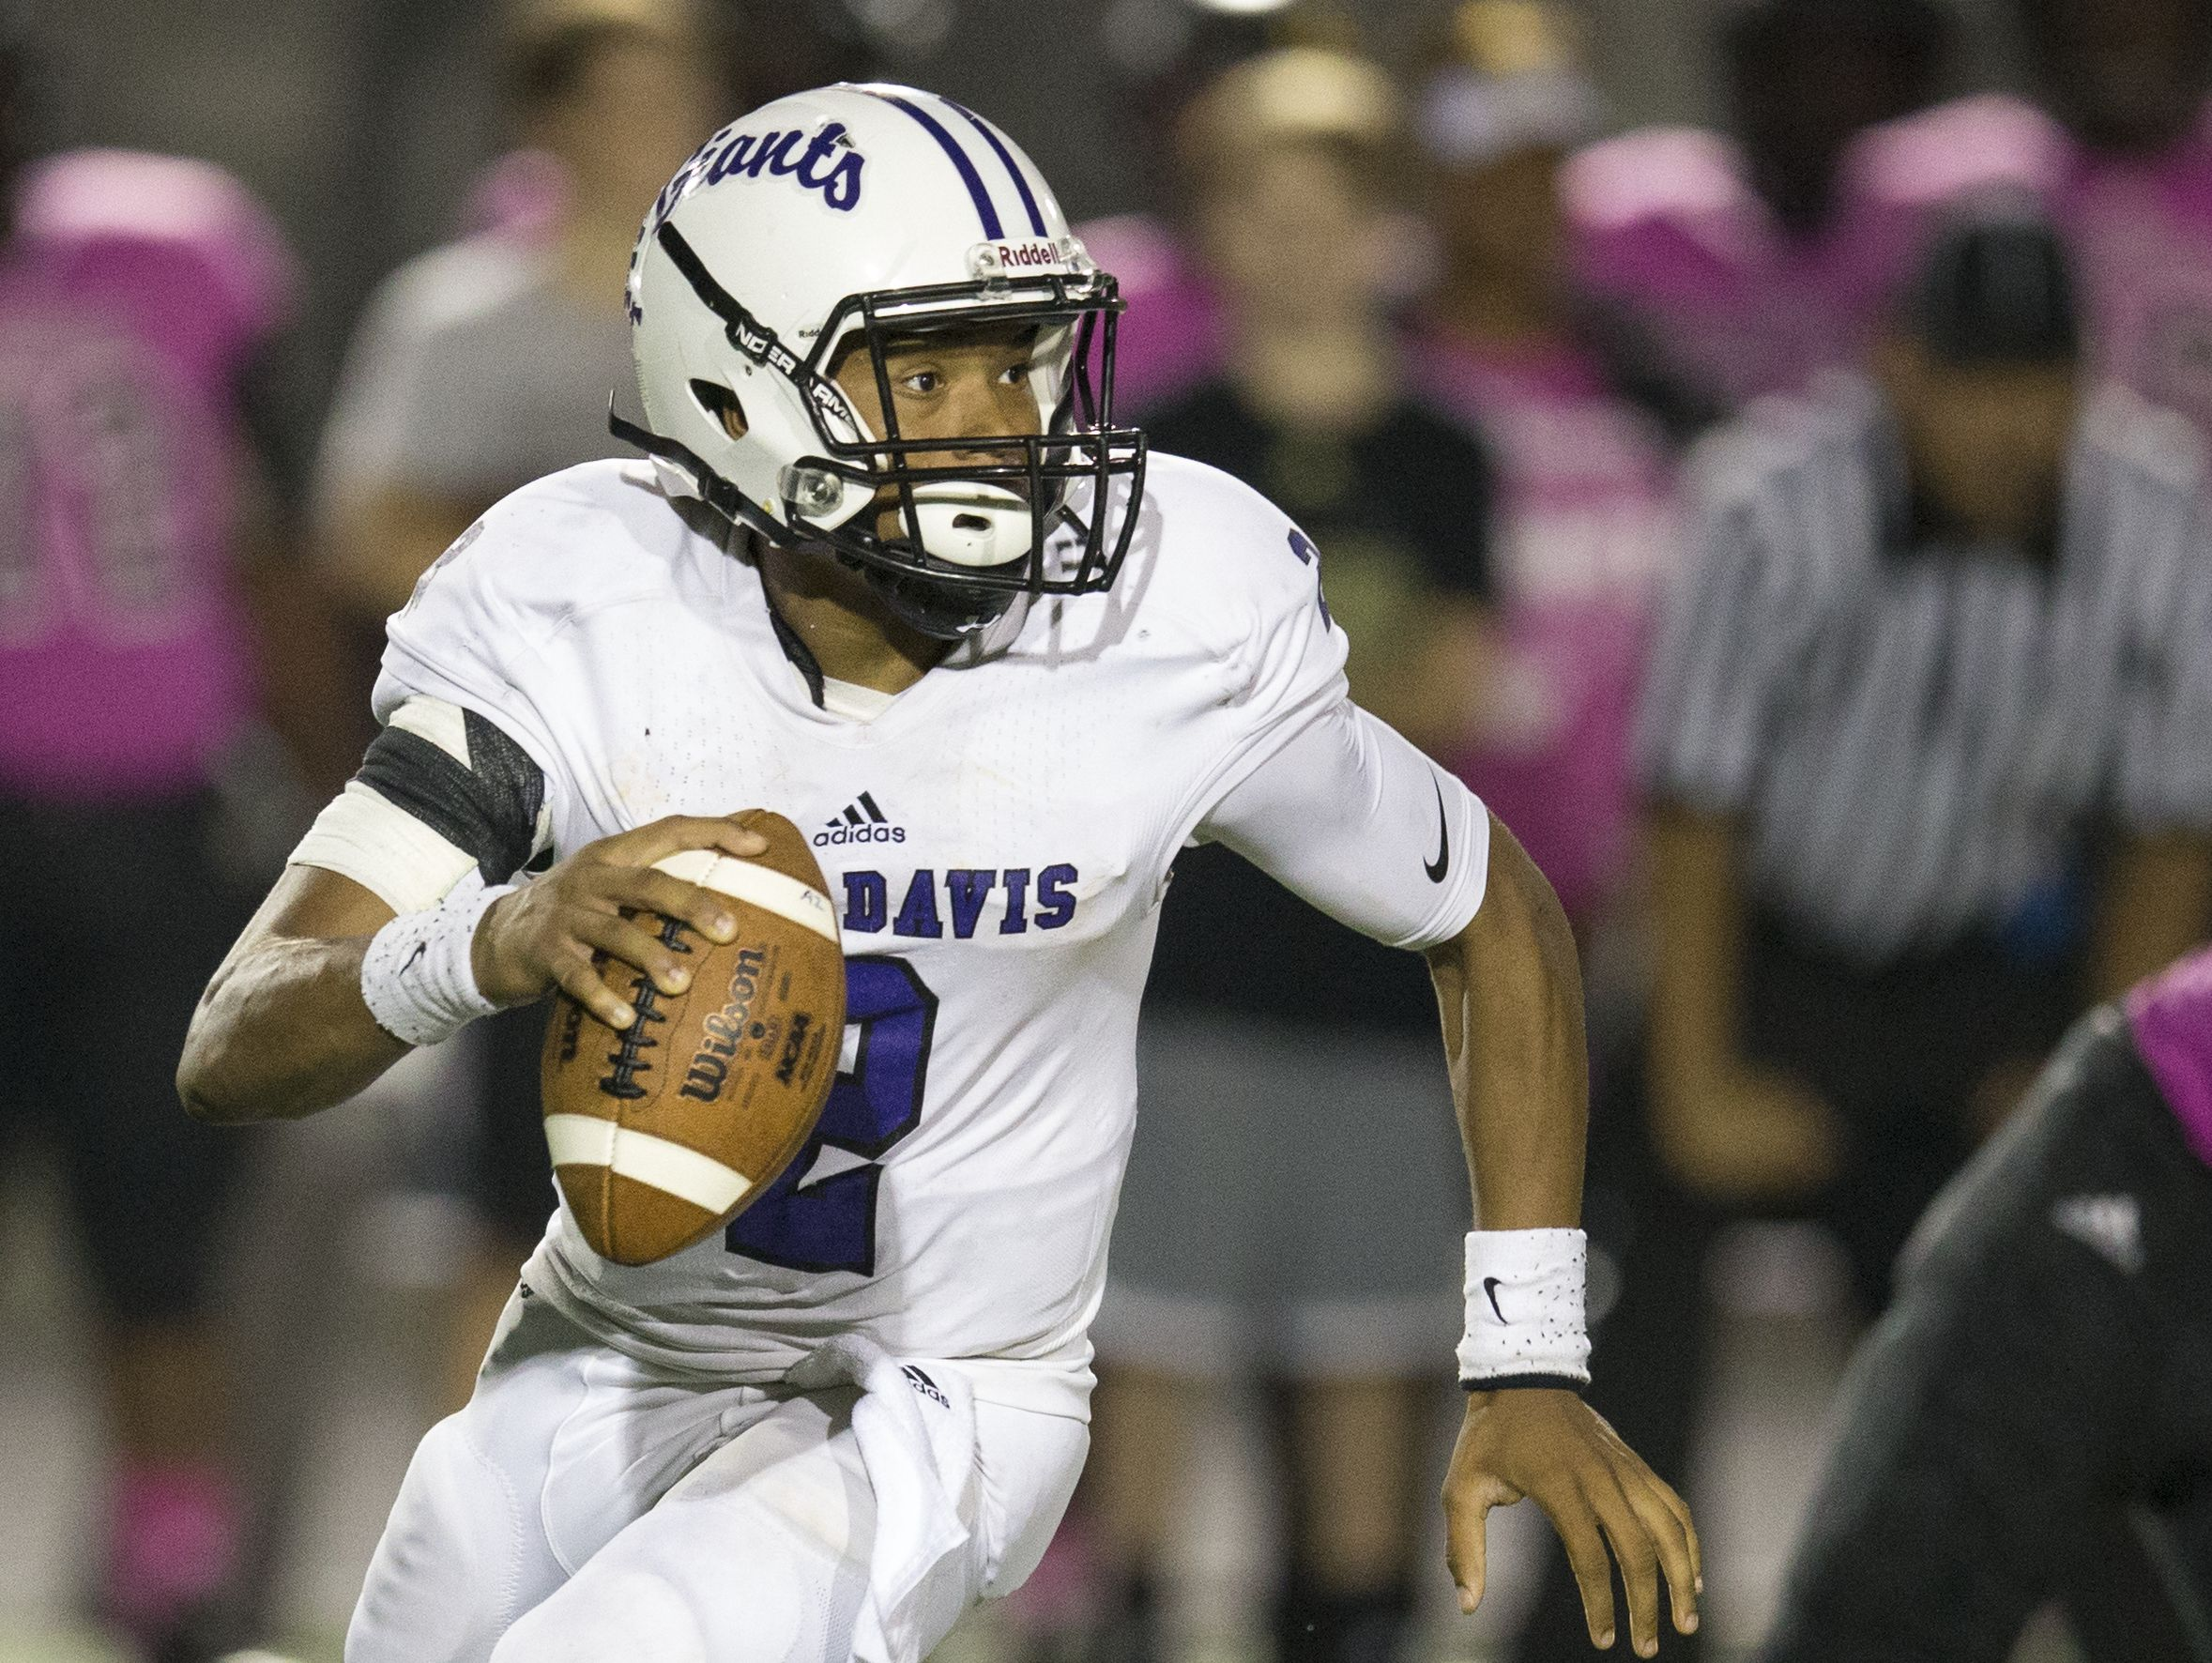 Reese Taylor accounted for 424 yards of total offense and four TDs in Ben Davis' win over Brownsburg last week.